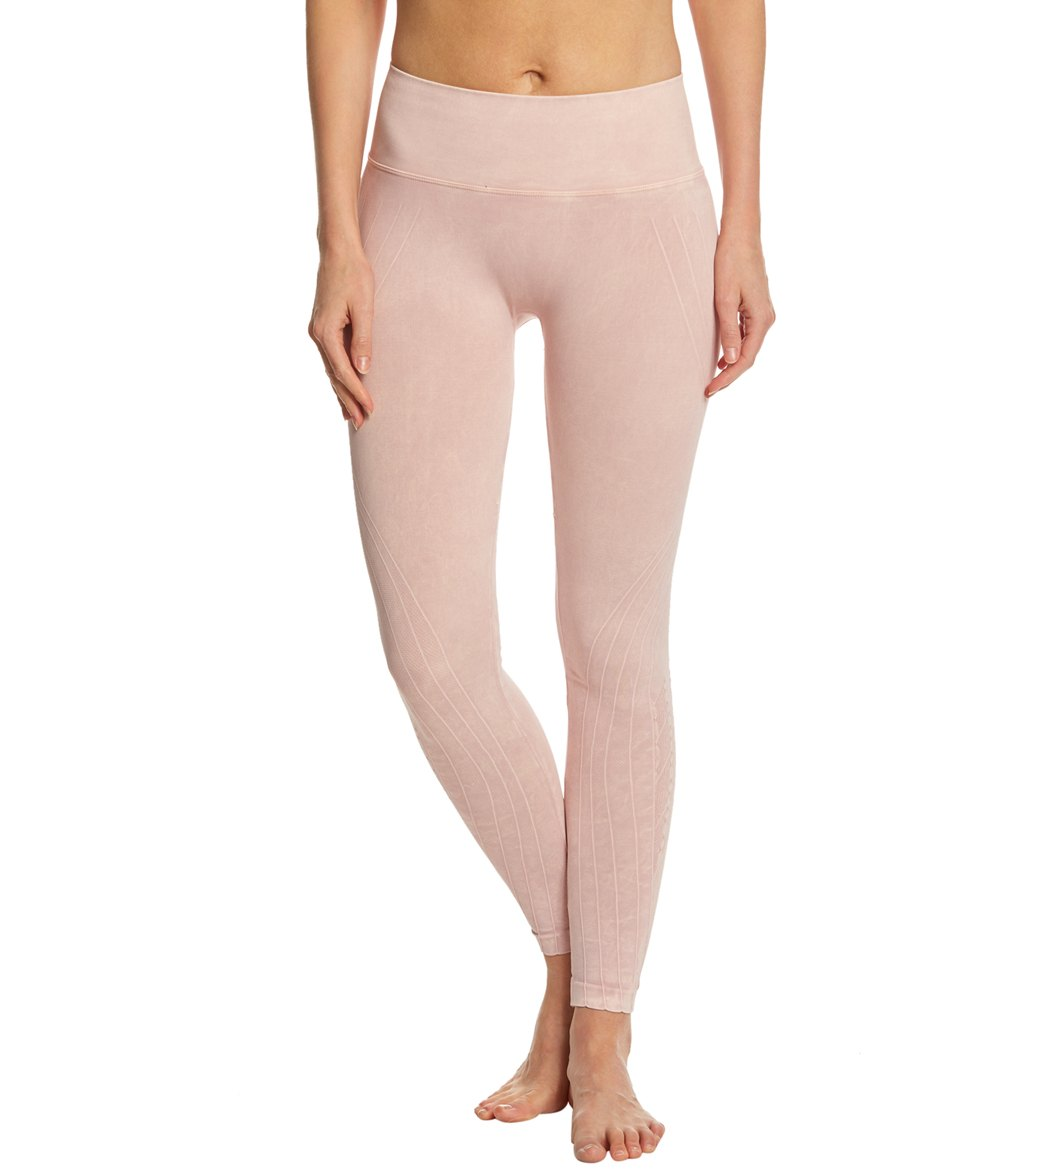 3f5a469172645 NUX Mineral Wash Mesa Seamless Yoga Leggings at YogaOutlet.com ...